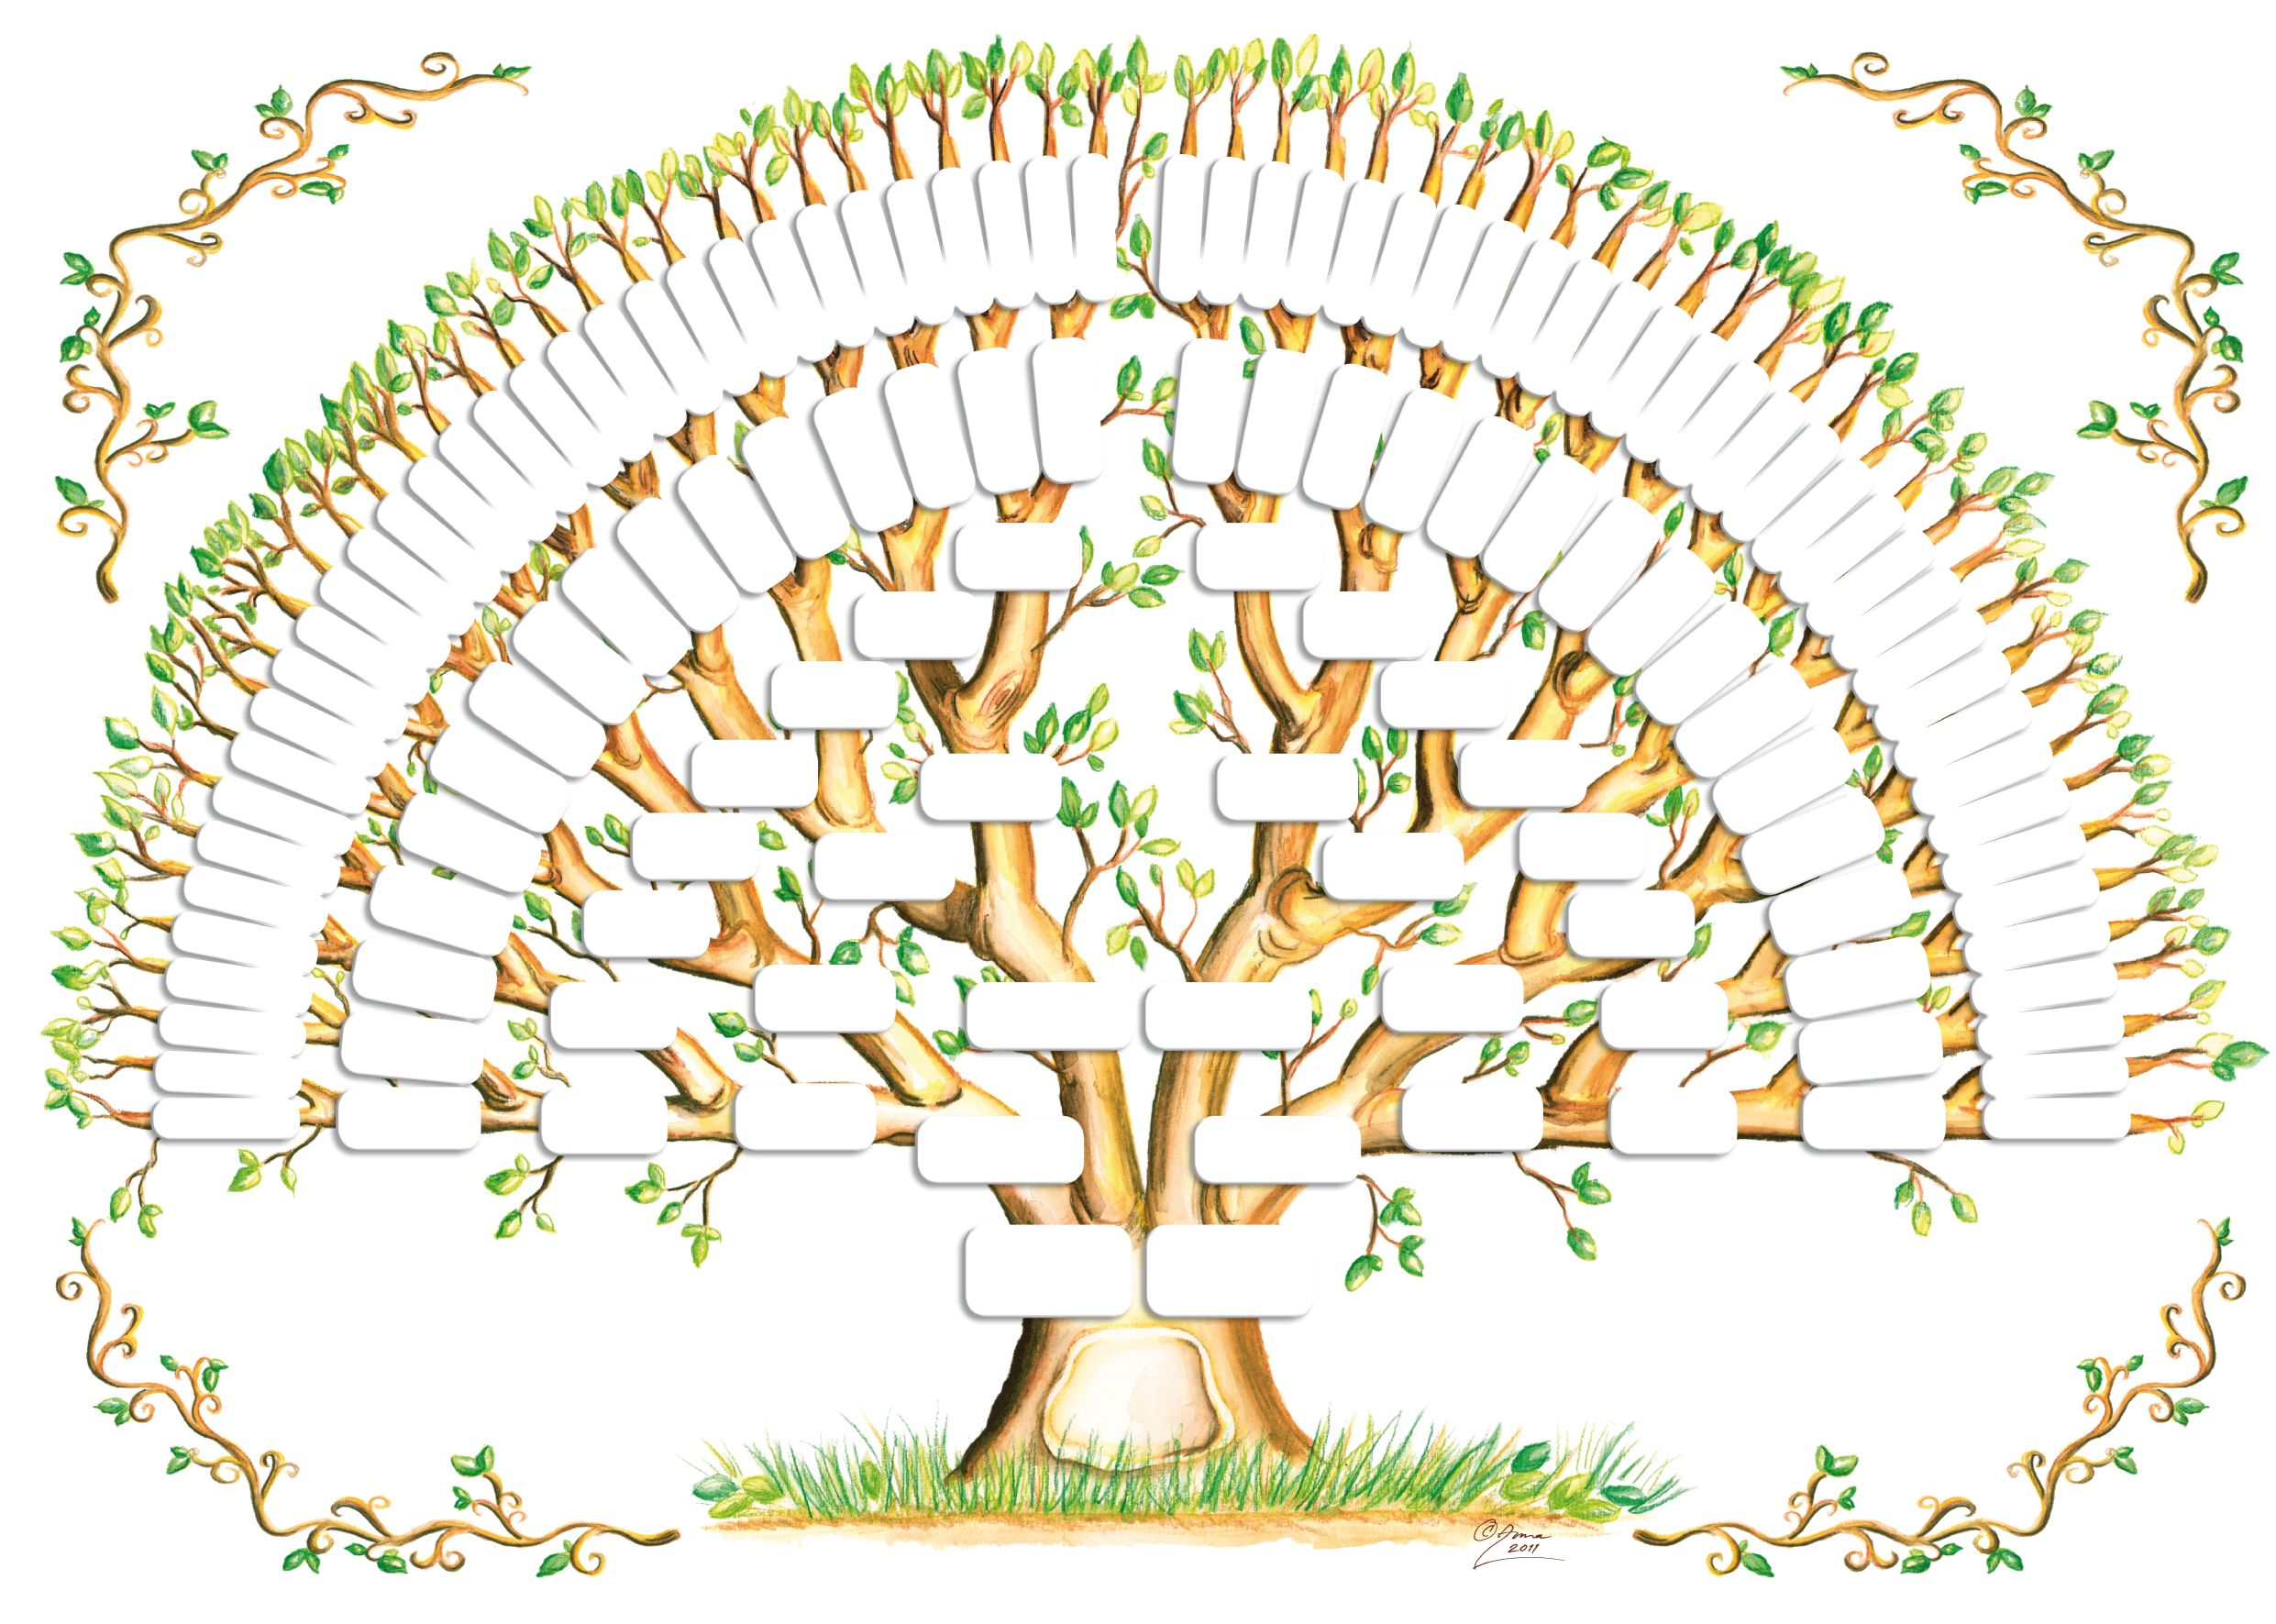 Extended clipart 3 generation family. Tree template gallery